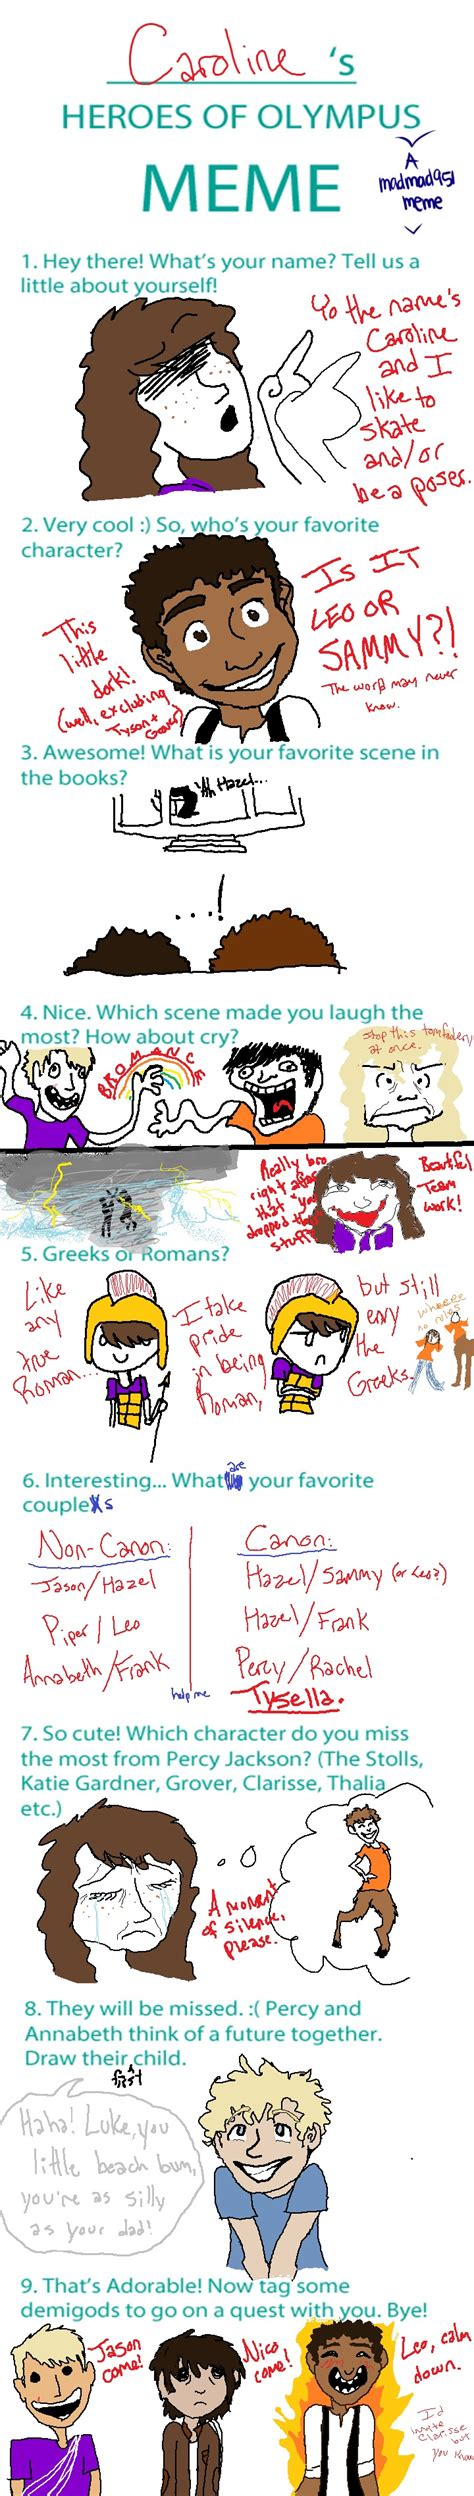 Heroes Of Olympus Memes - heroes of olympus meme by abductionfromabove on deviantart